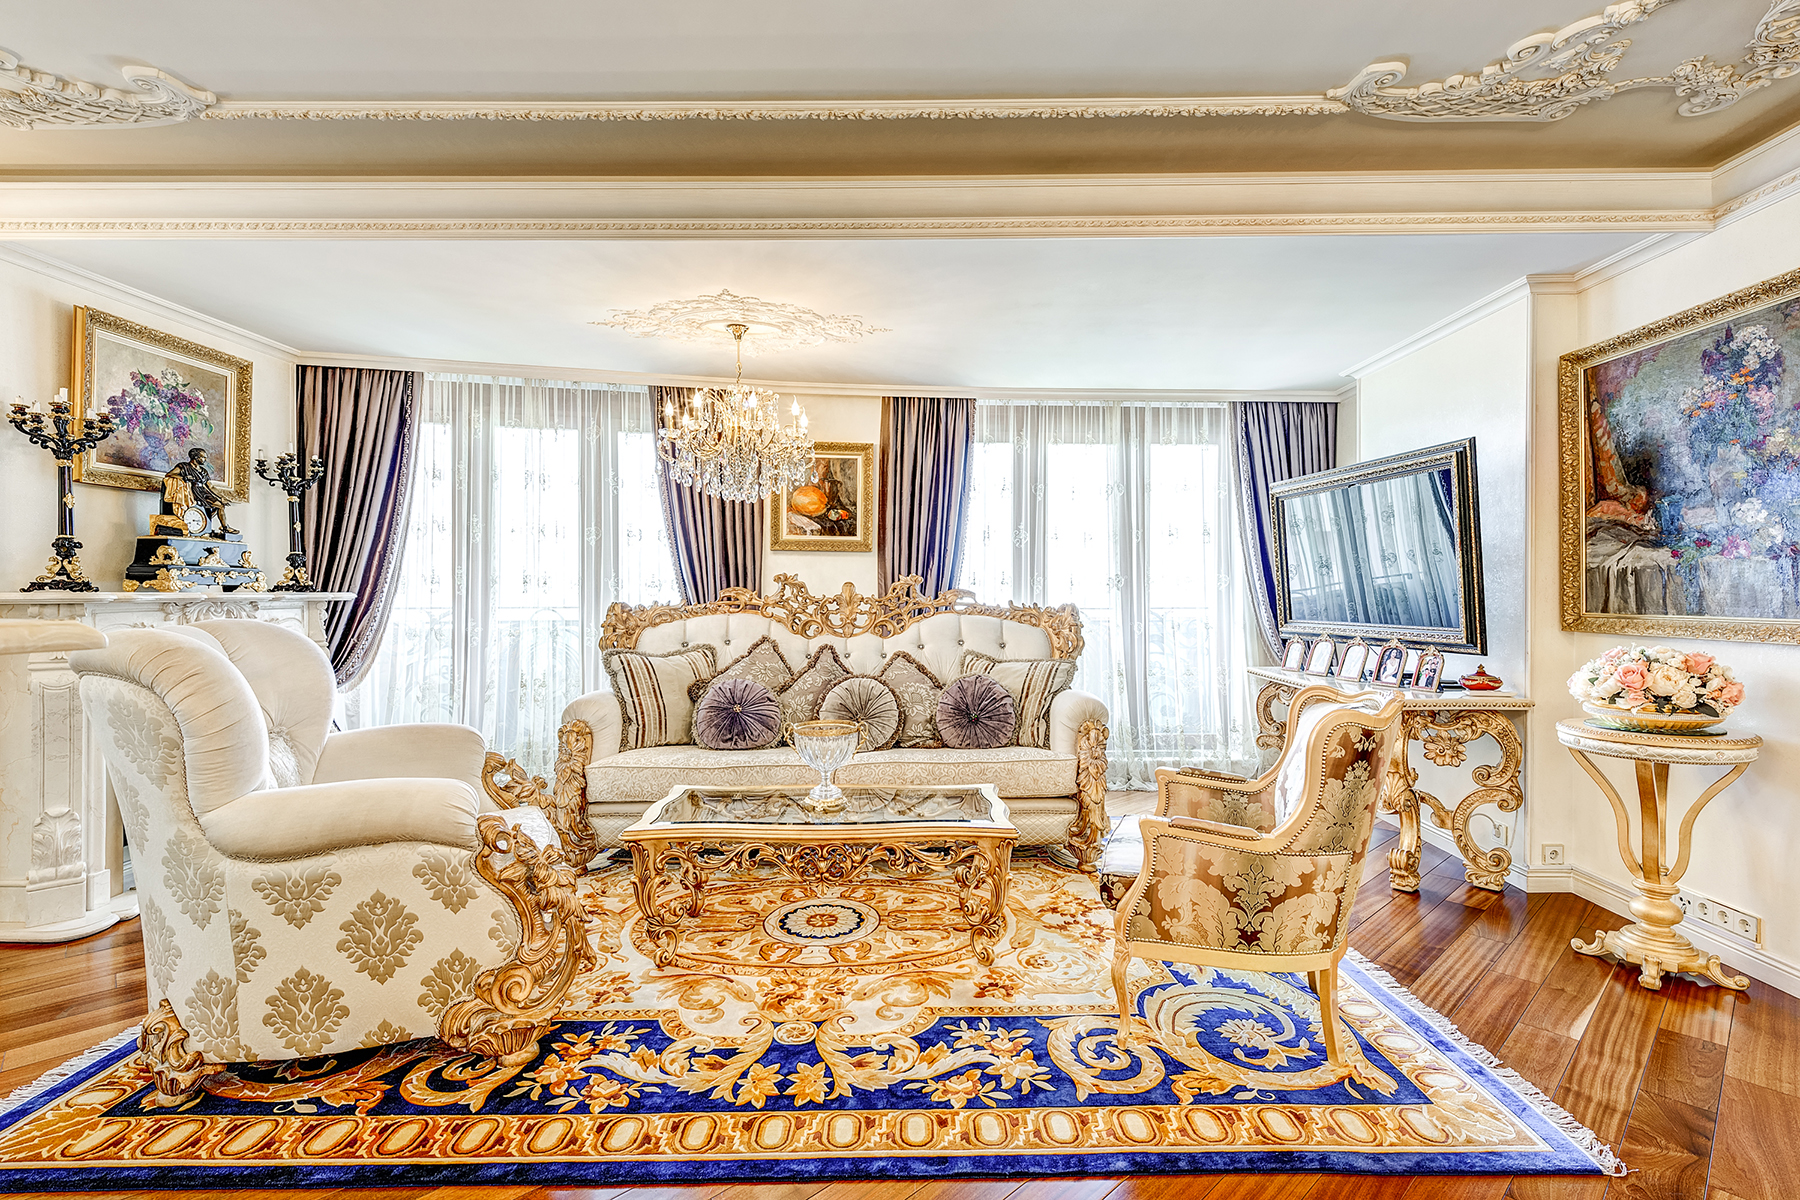 Single Family Home for Sale at Beautiful apartment on Khodynski boulevard with impressive views Moscow, Moscow City, Russia